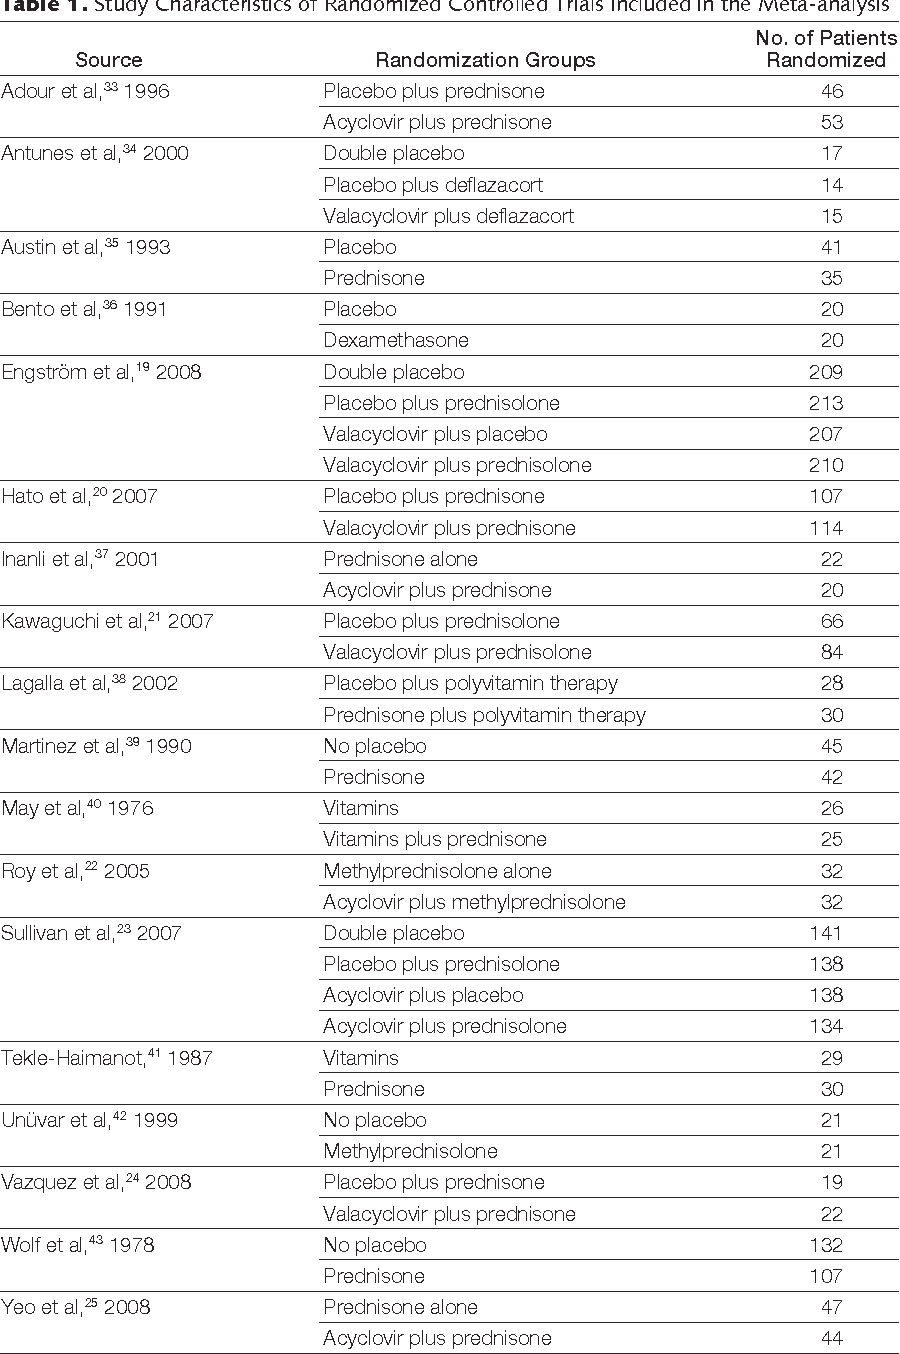 Table 1. Study Characteristics of Randomized Controlled Trials Included in the Meta-analysis